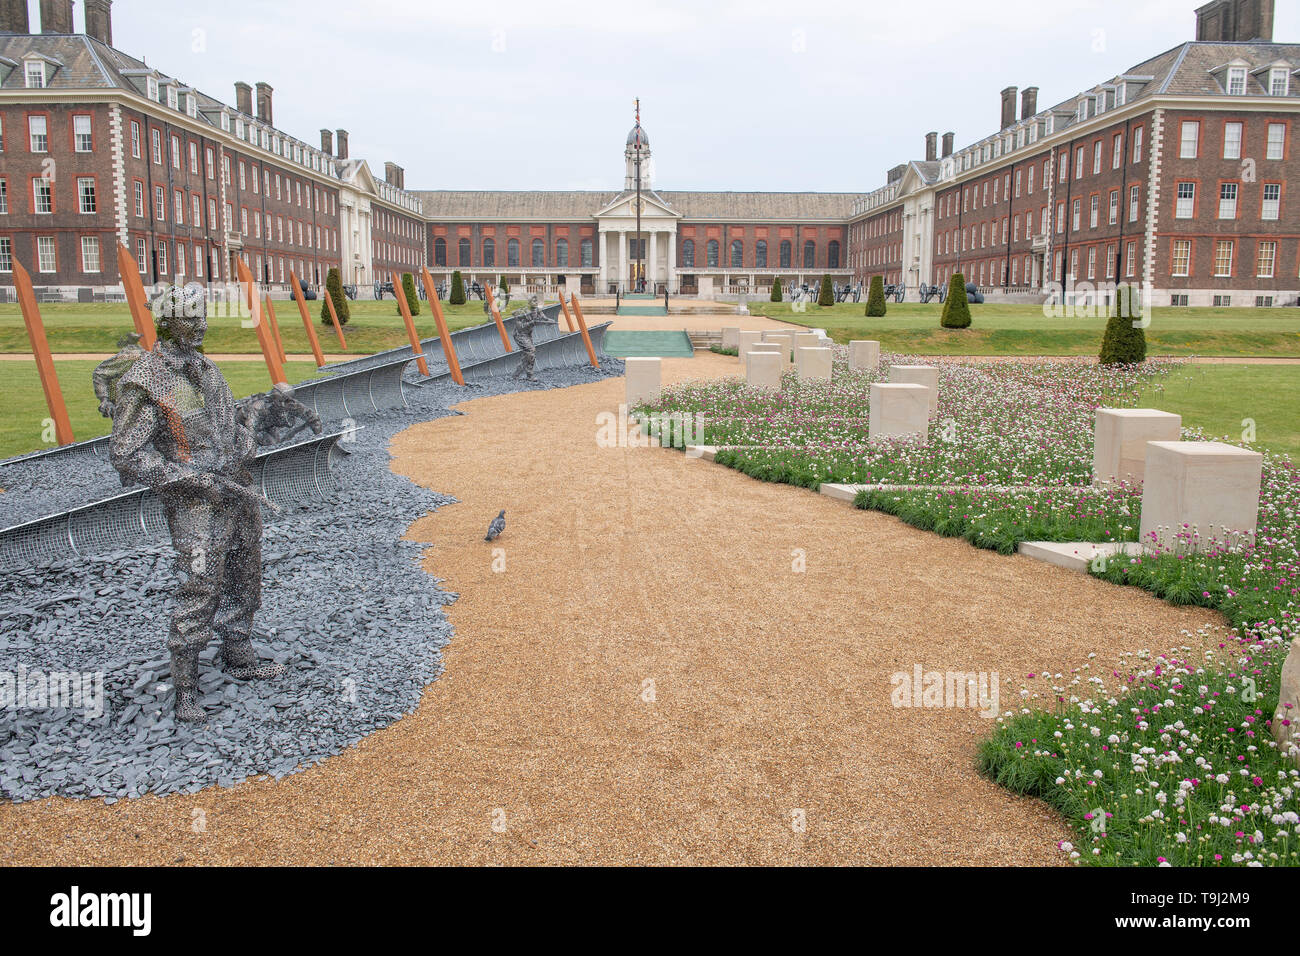 Royal Hospital Chelsea, London, UK. 19th May 2019. Chelsea Flower Show 2019 readies itself for judges with public opening on 21st May, with finishing touches to outdoor gardens. Image: The D-Day 75 Garden, which will be moved to Normandy in time for the 75th Anniversary of D-Day. Designed by John Everiss Design. Credit: Malcolm Park/Alamy Live News. Stock Photo